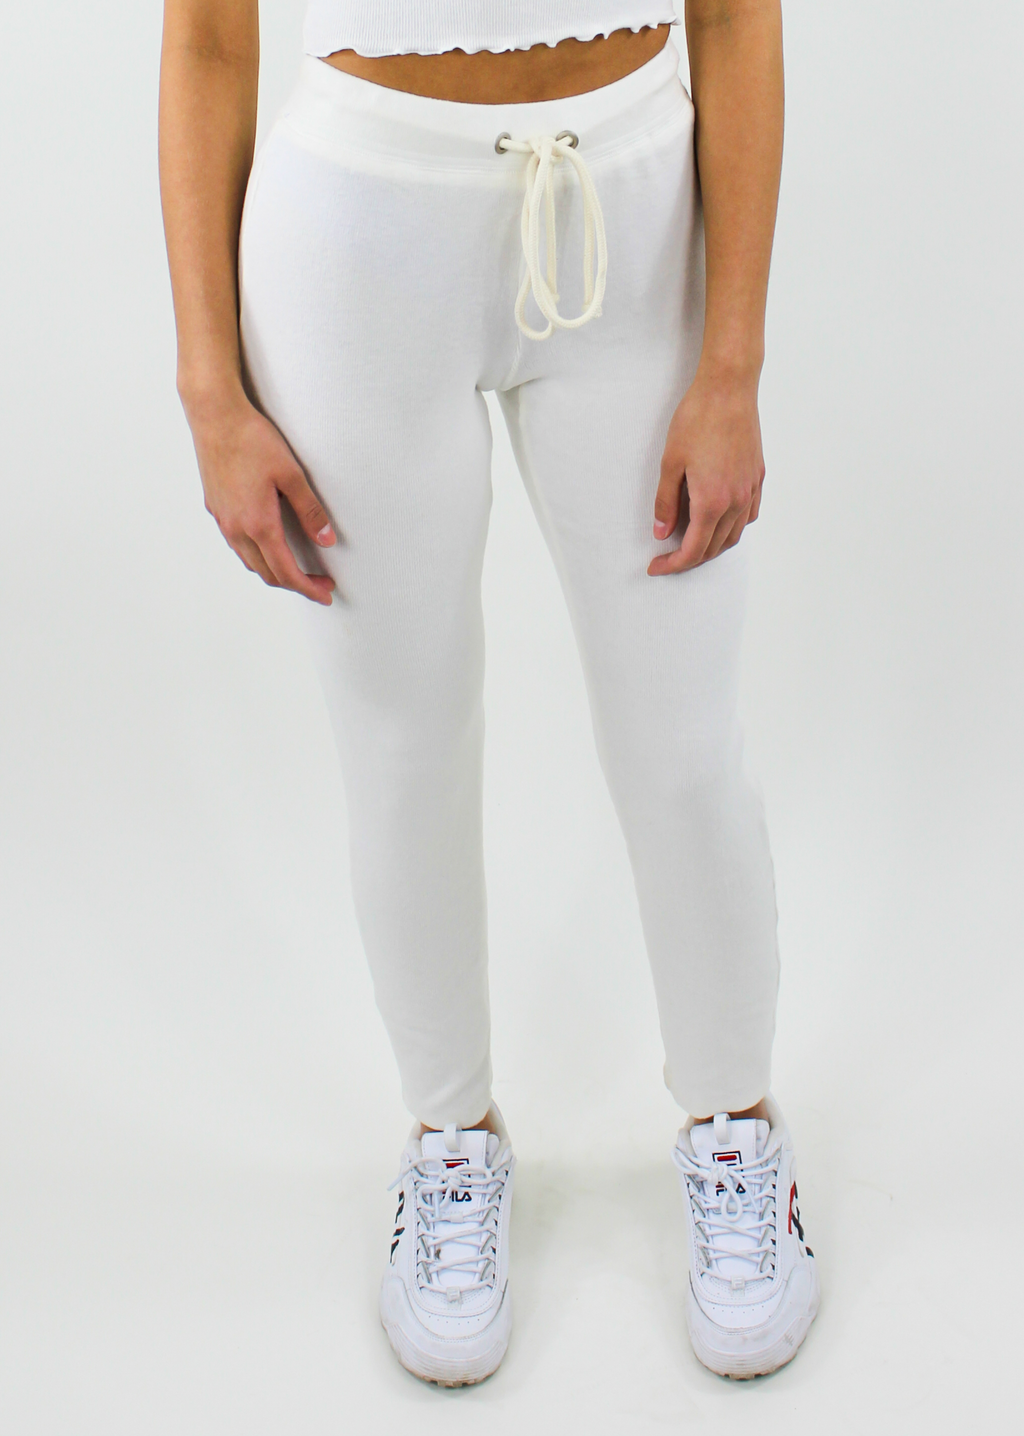 Crazy Dream Sweats ★ White - Rock N Rags